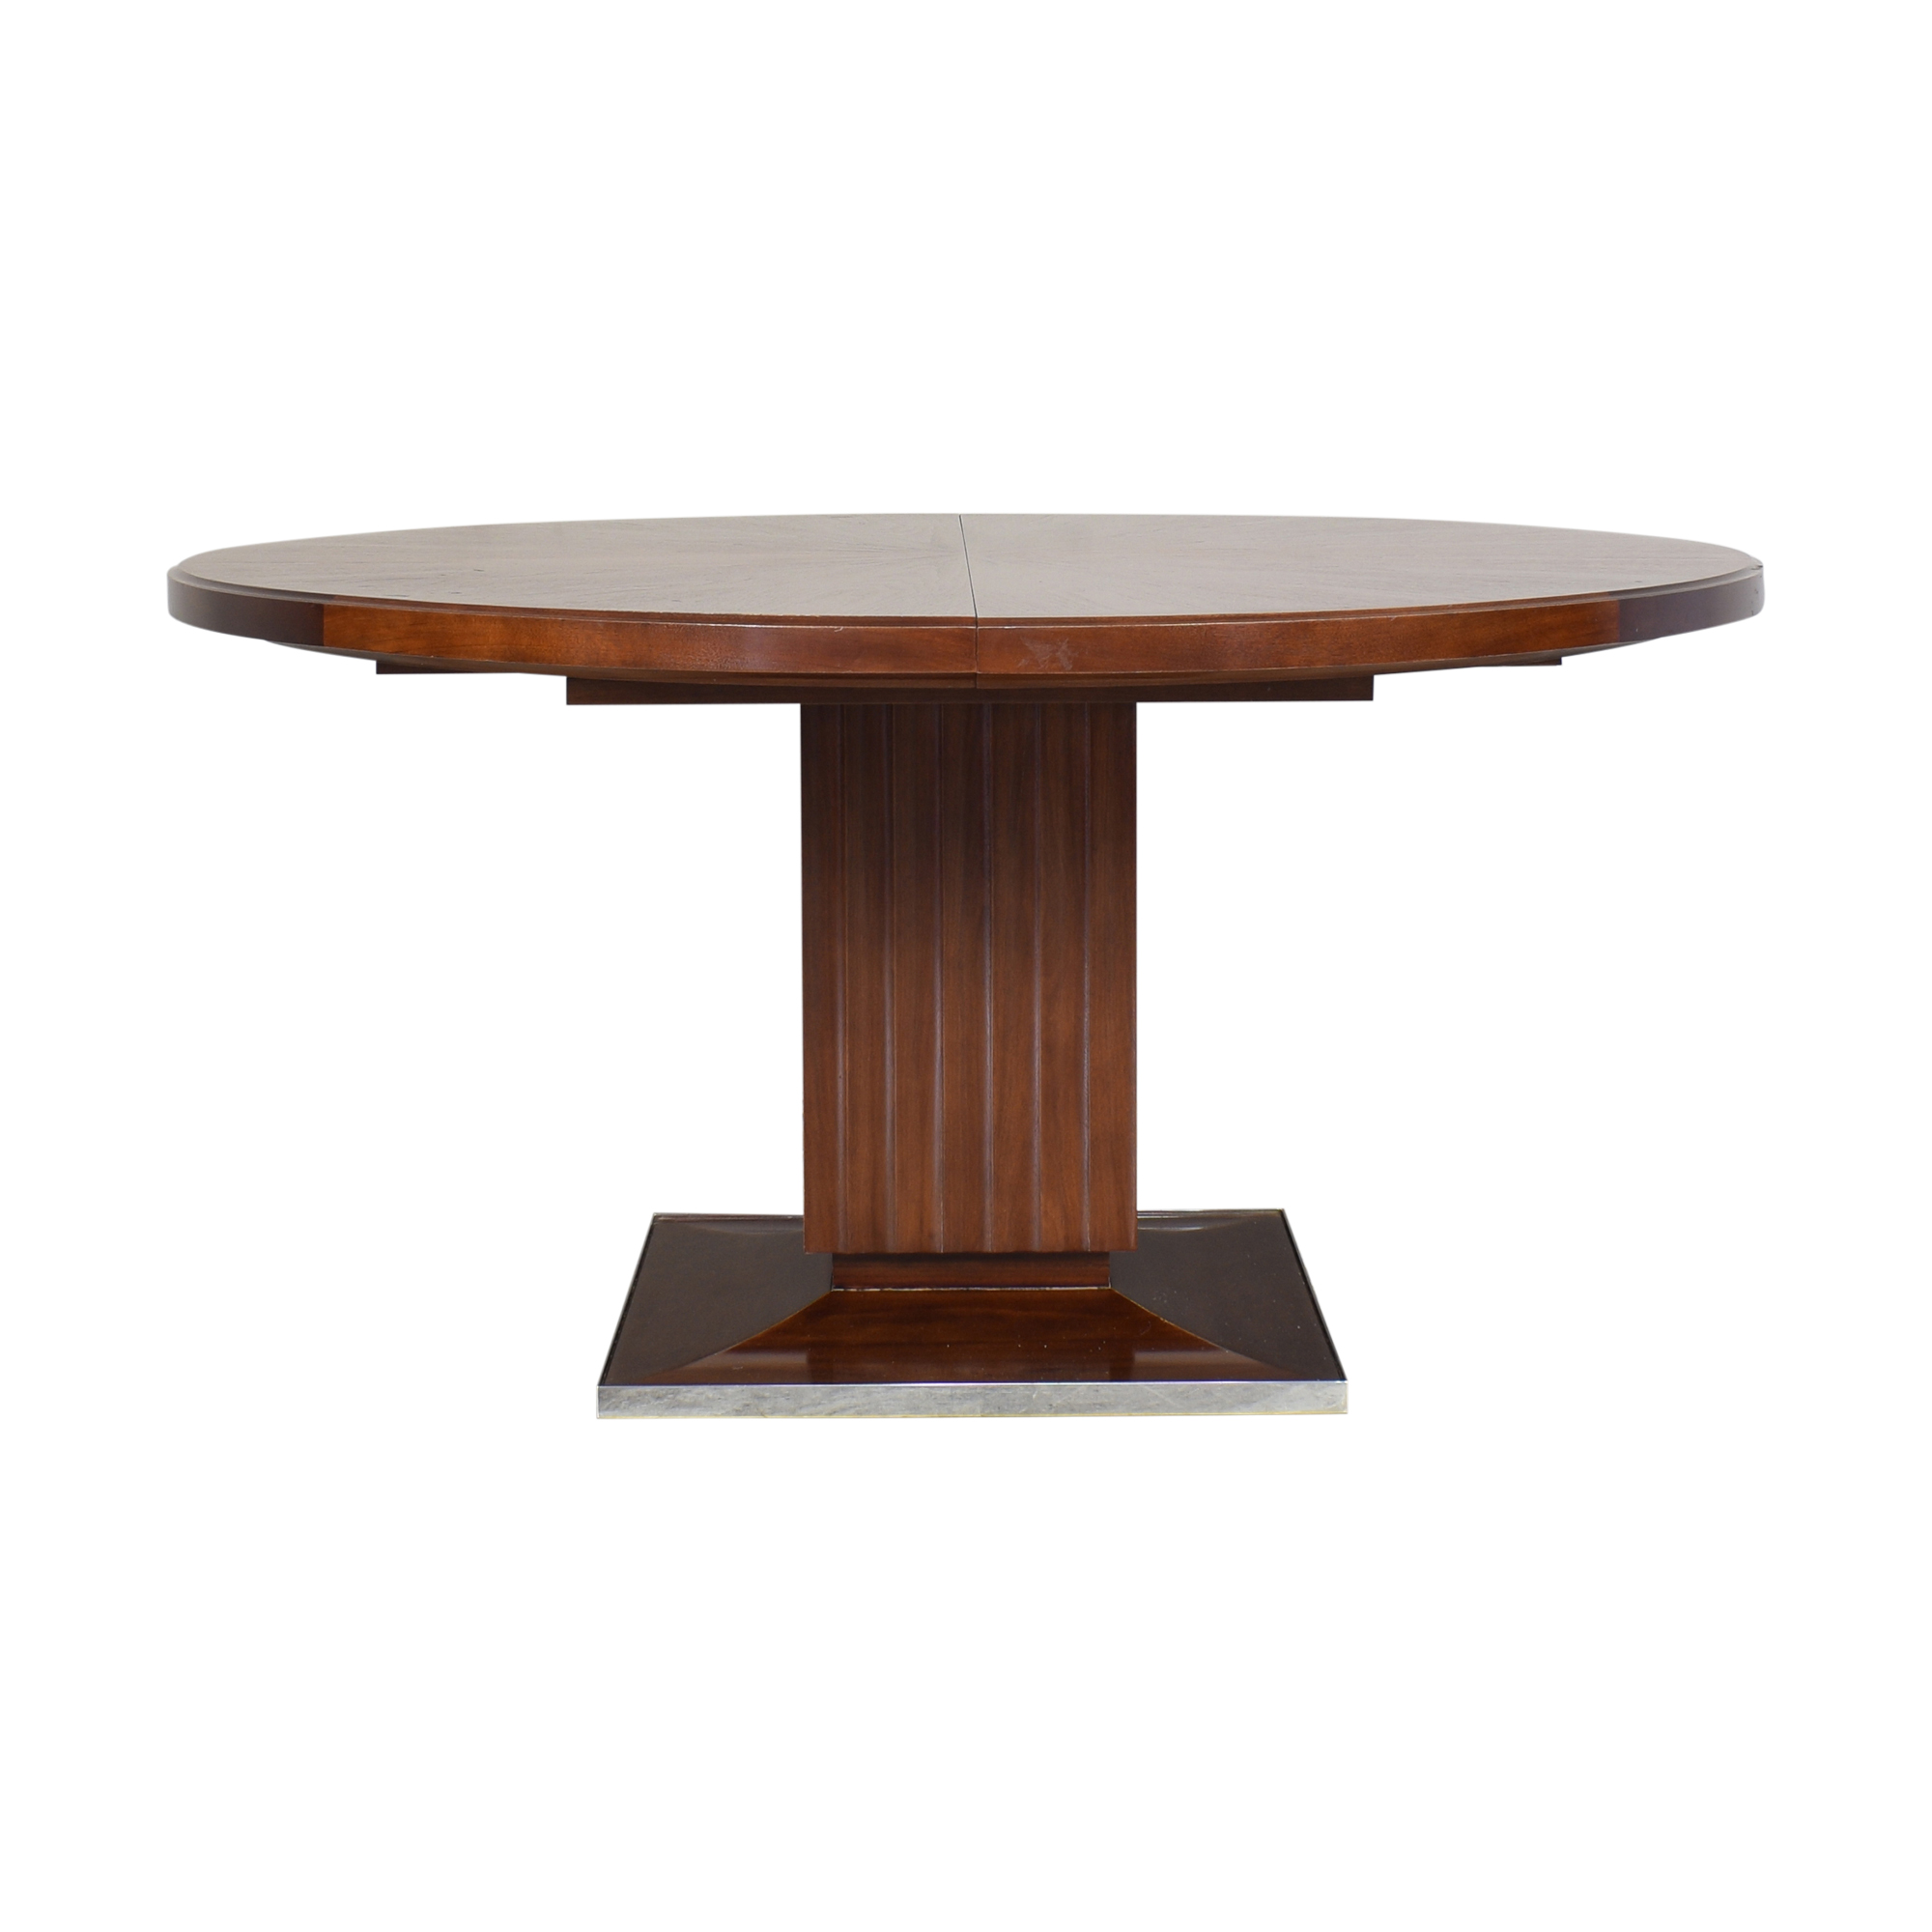 shop Bolier & Company Bolier & Company Atelier Round Dining Table online